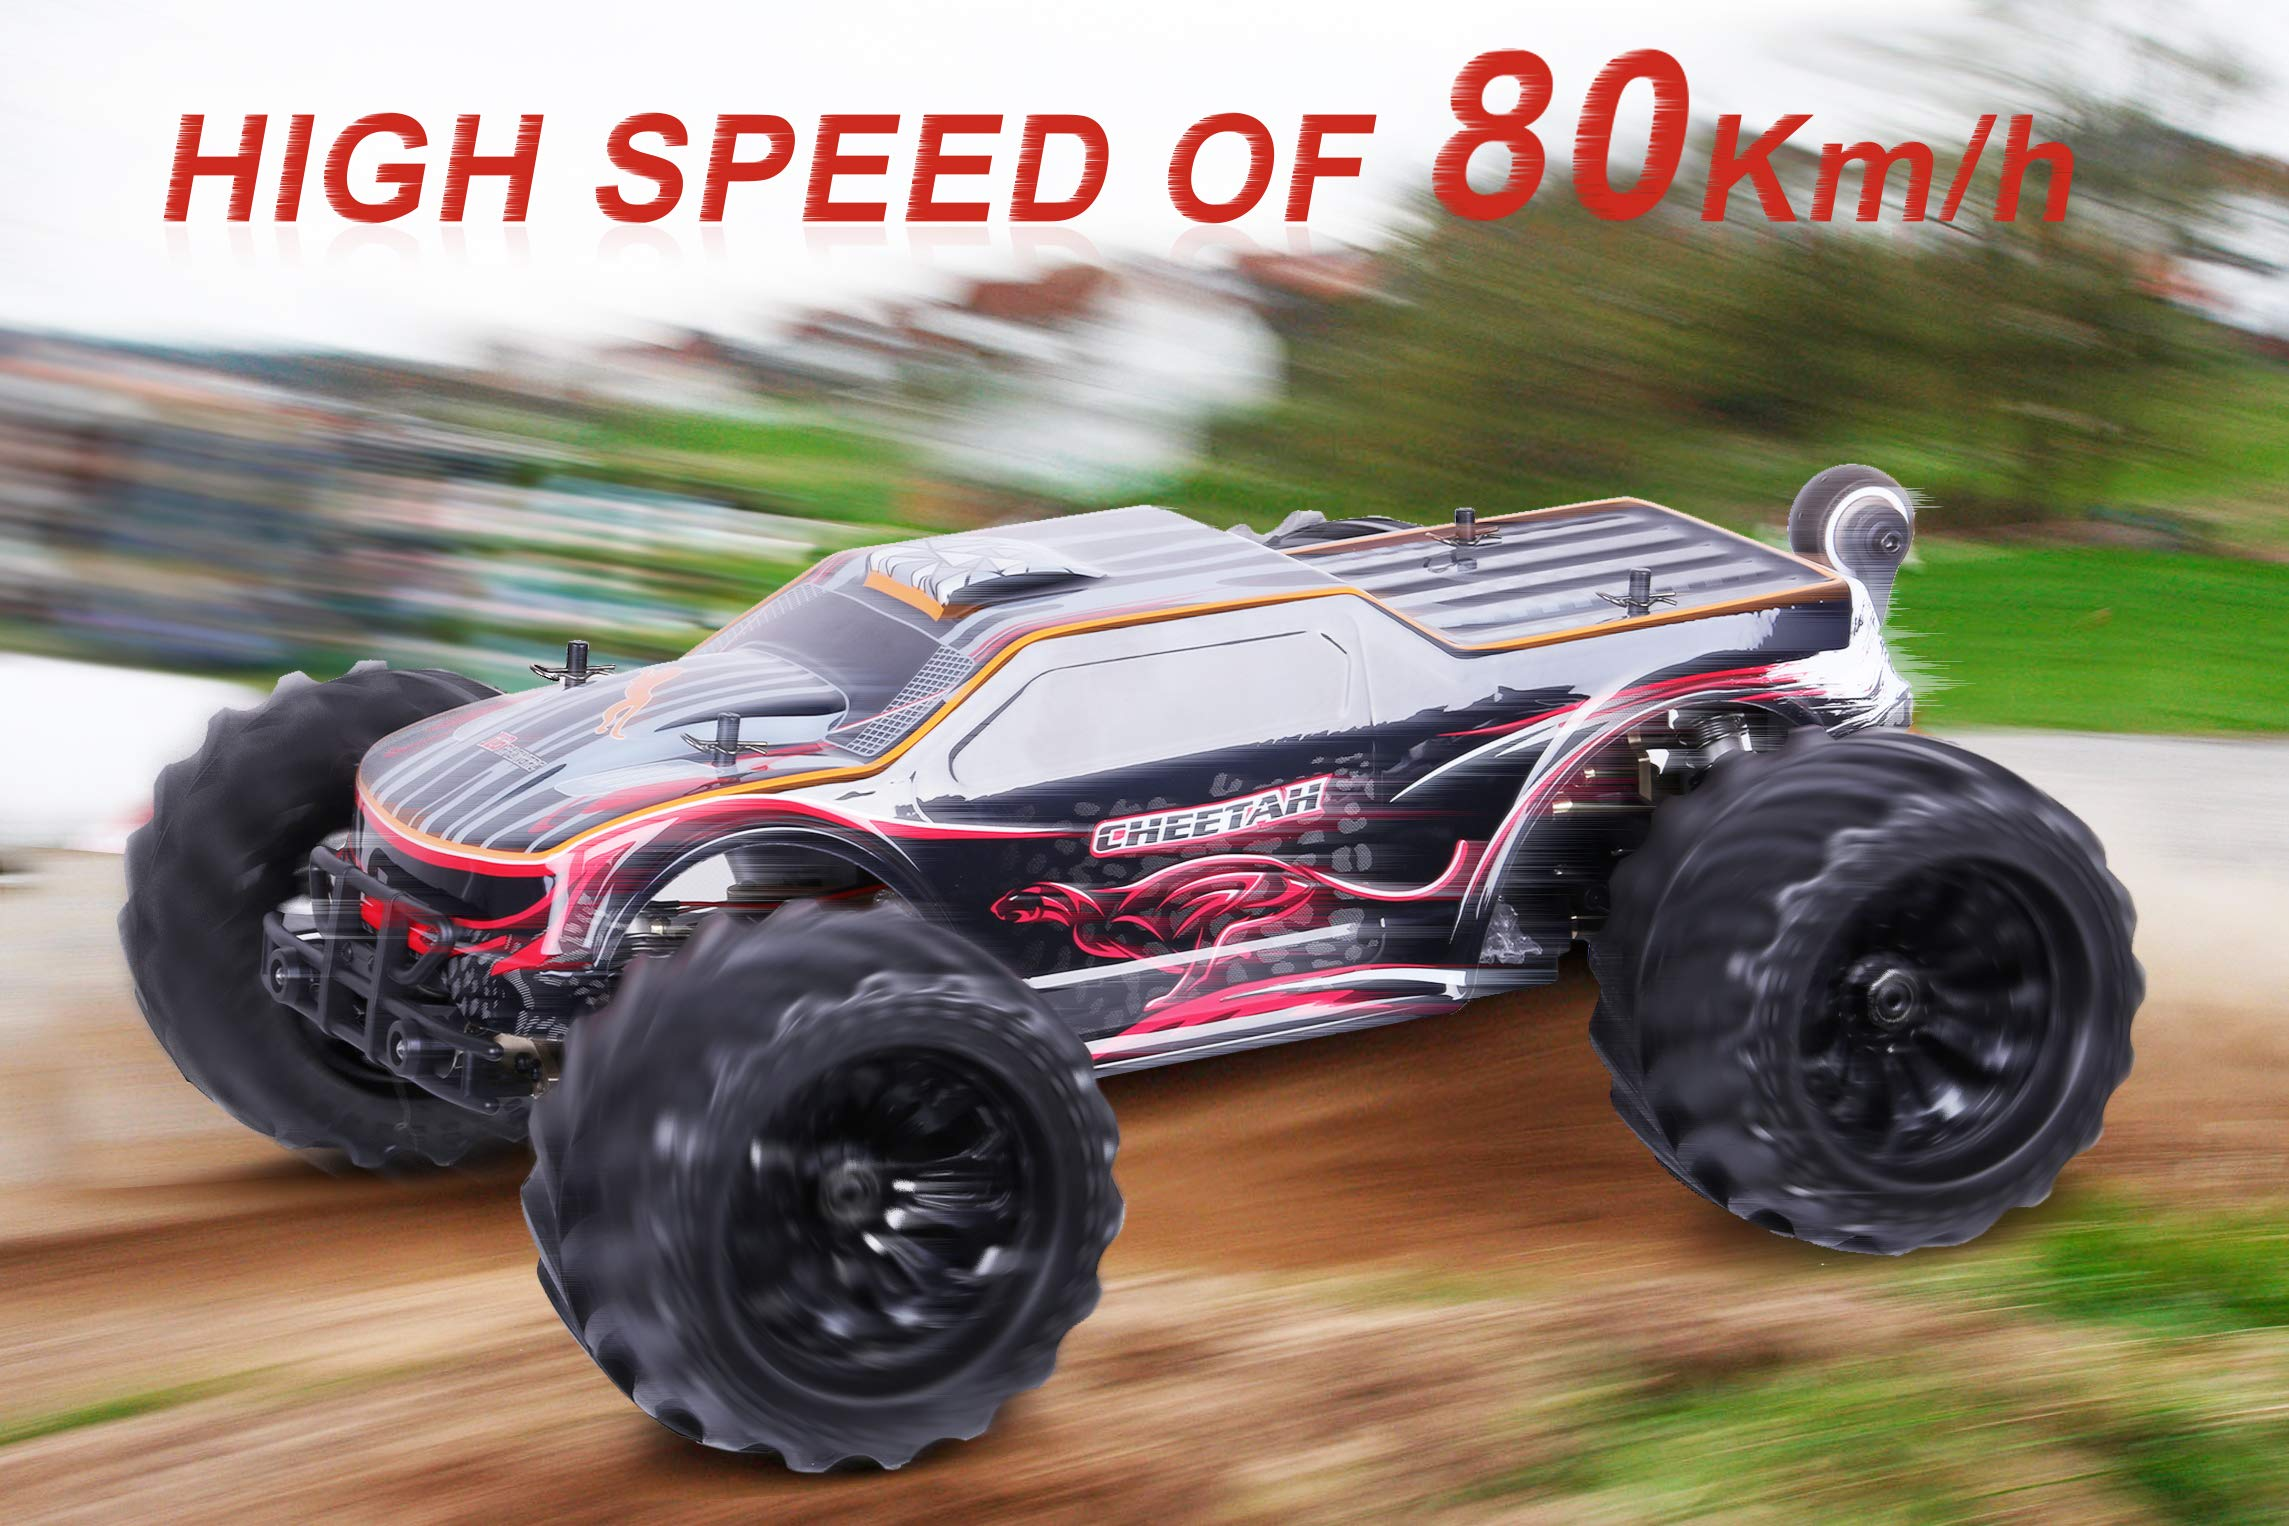 JLBRACINGRC Super Fast 1/10 Scale Cheetah RC Car, 80 KM/H 4WD 2.4GHZ RC Truck with 120A ESC IPX7 Waterproof 3670 2500KV Brushless Motor Wheelie Function 4x4 Off Road RTR RC Monster Truck for Adults by JLBRACINGRC (Image #2)